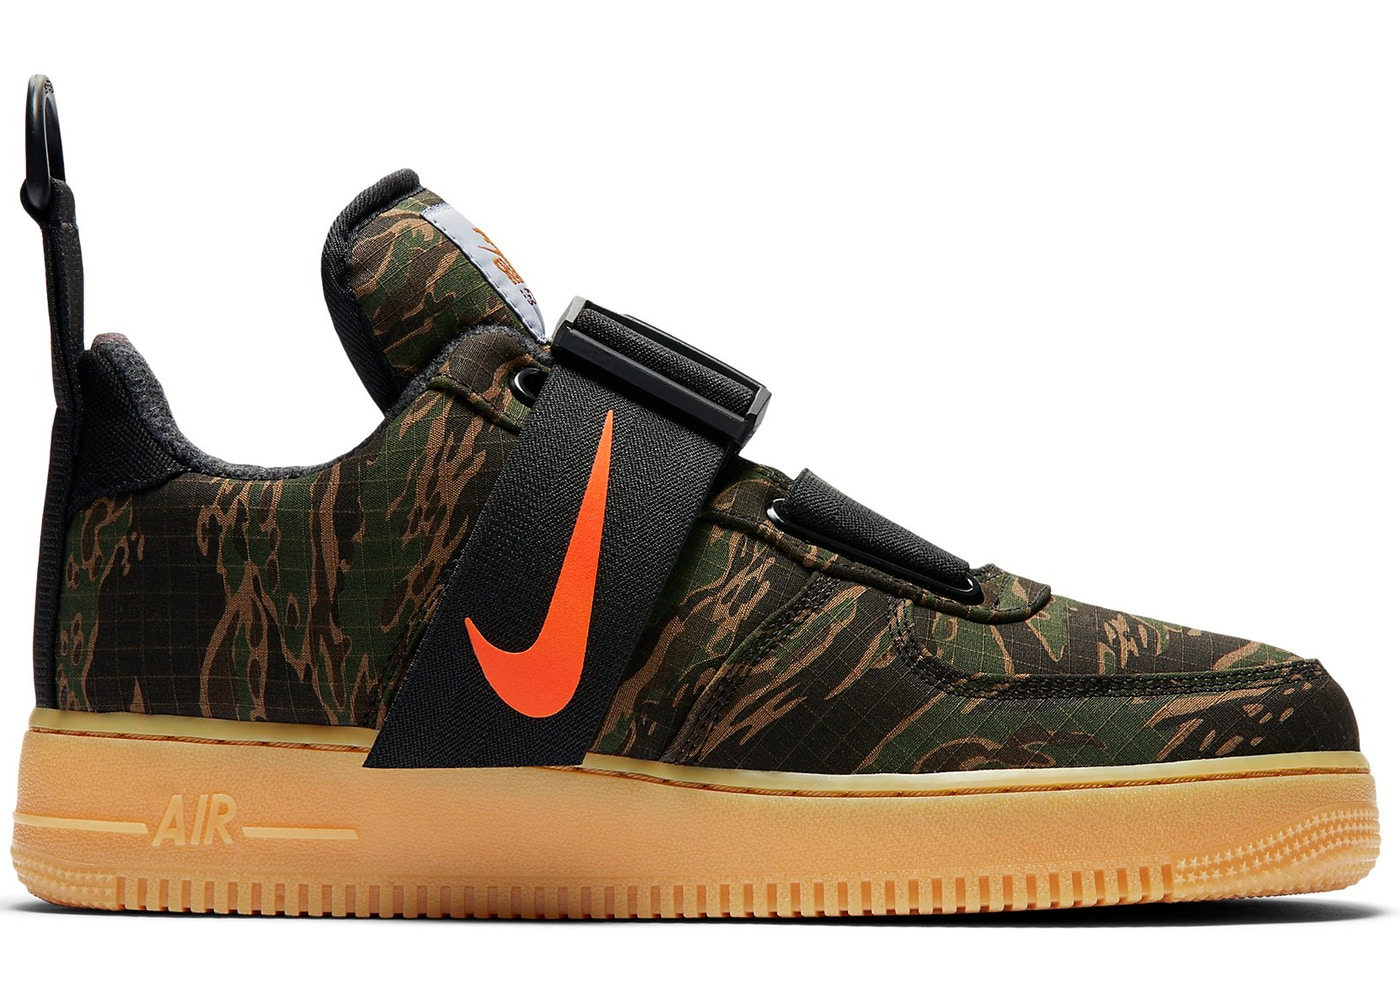 Air Force 1 Low Utility Carhartt WIP Camo - AV4112-300 1f8fdcd75